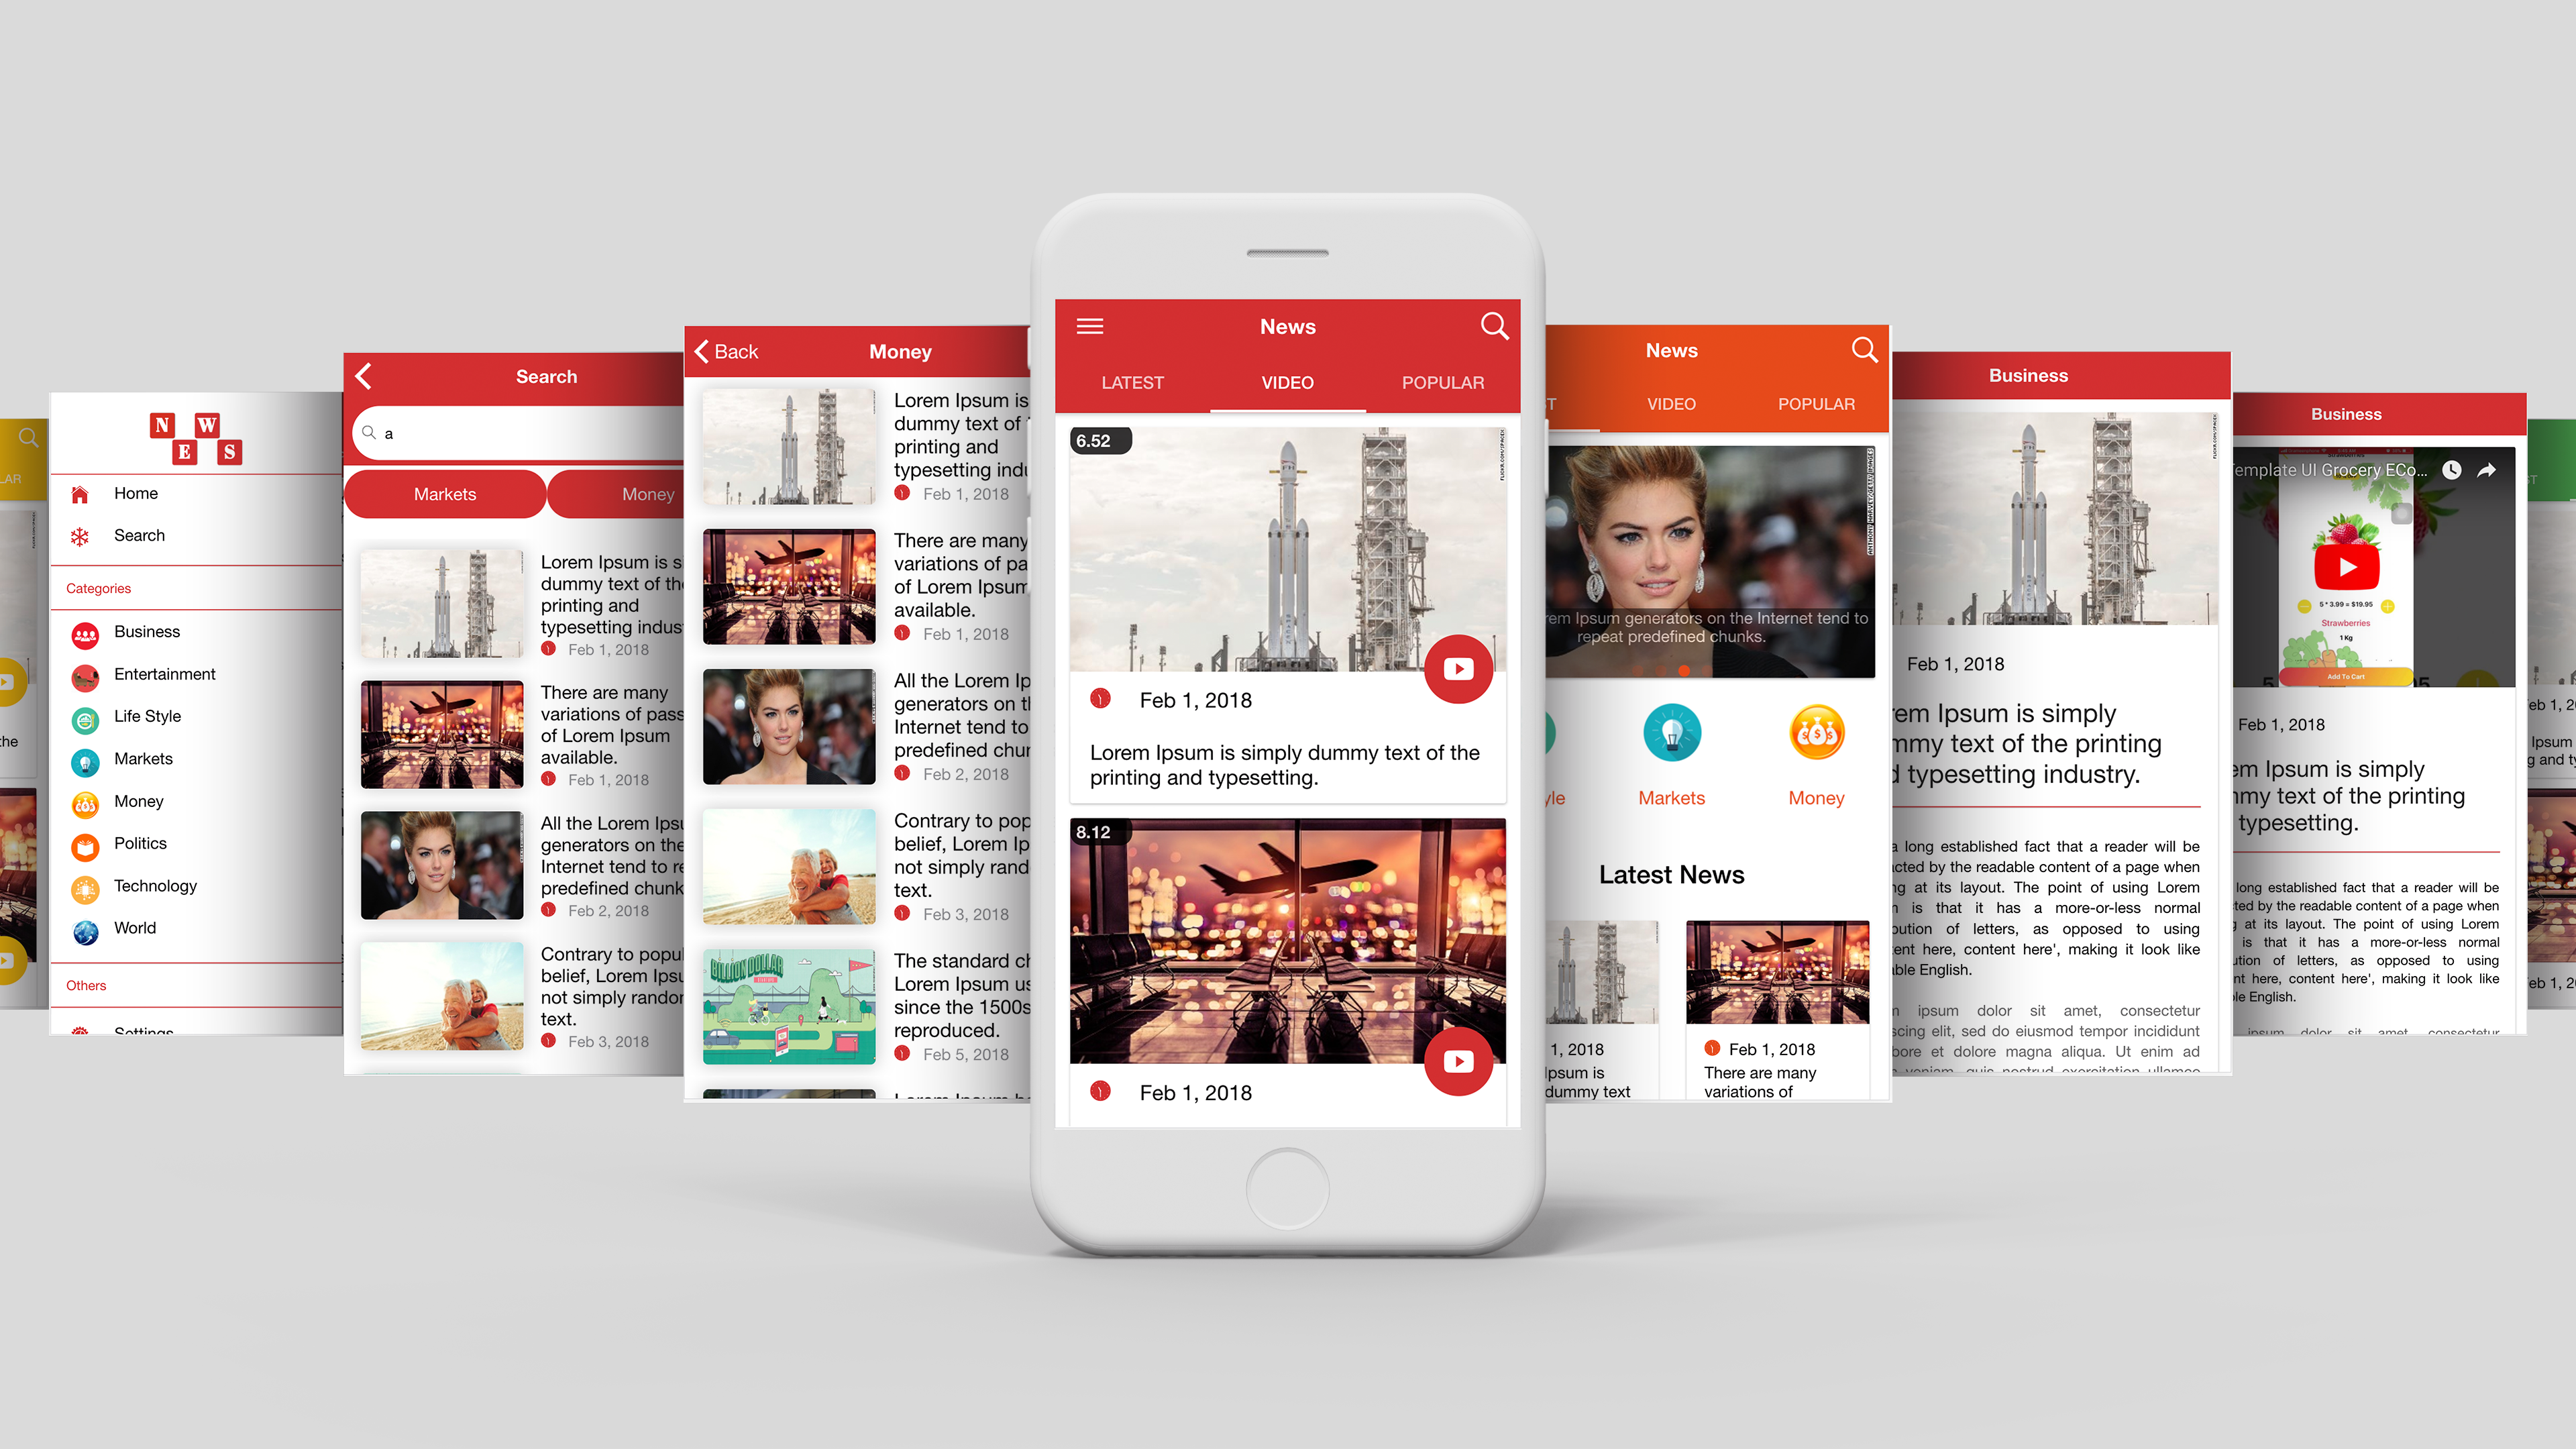 Multipurpose news app template ui ionic 3 by ionicbucket codecanyon by using this app you can easily make any large scale news or magazine app from today and save your development time 100 hours spiritdancerdesigns Choice Image